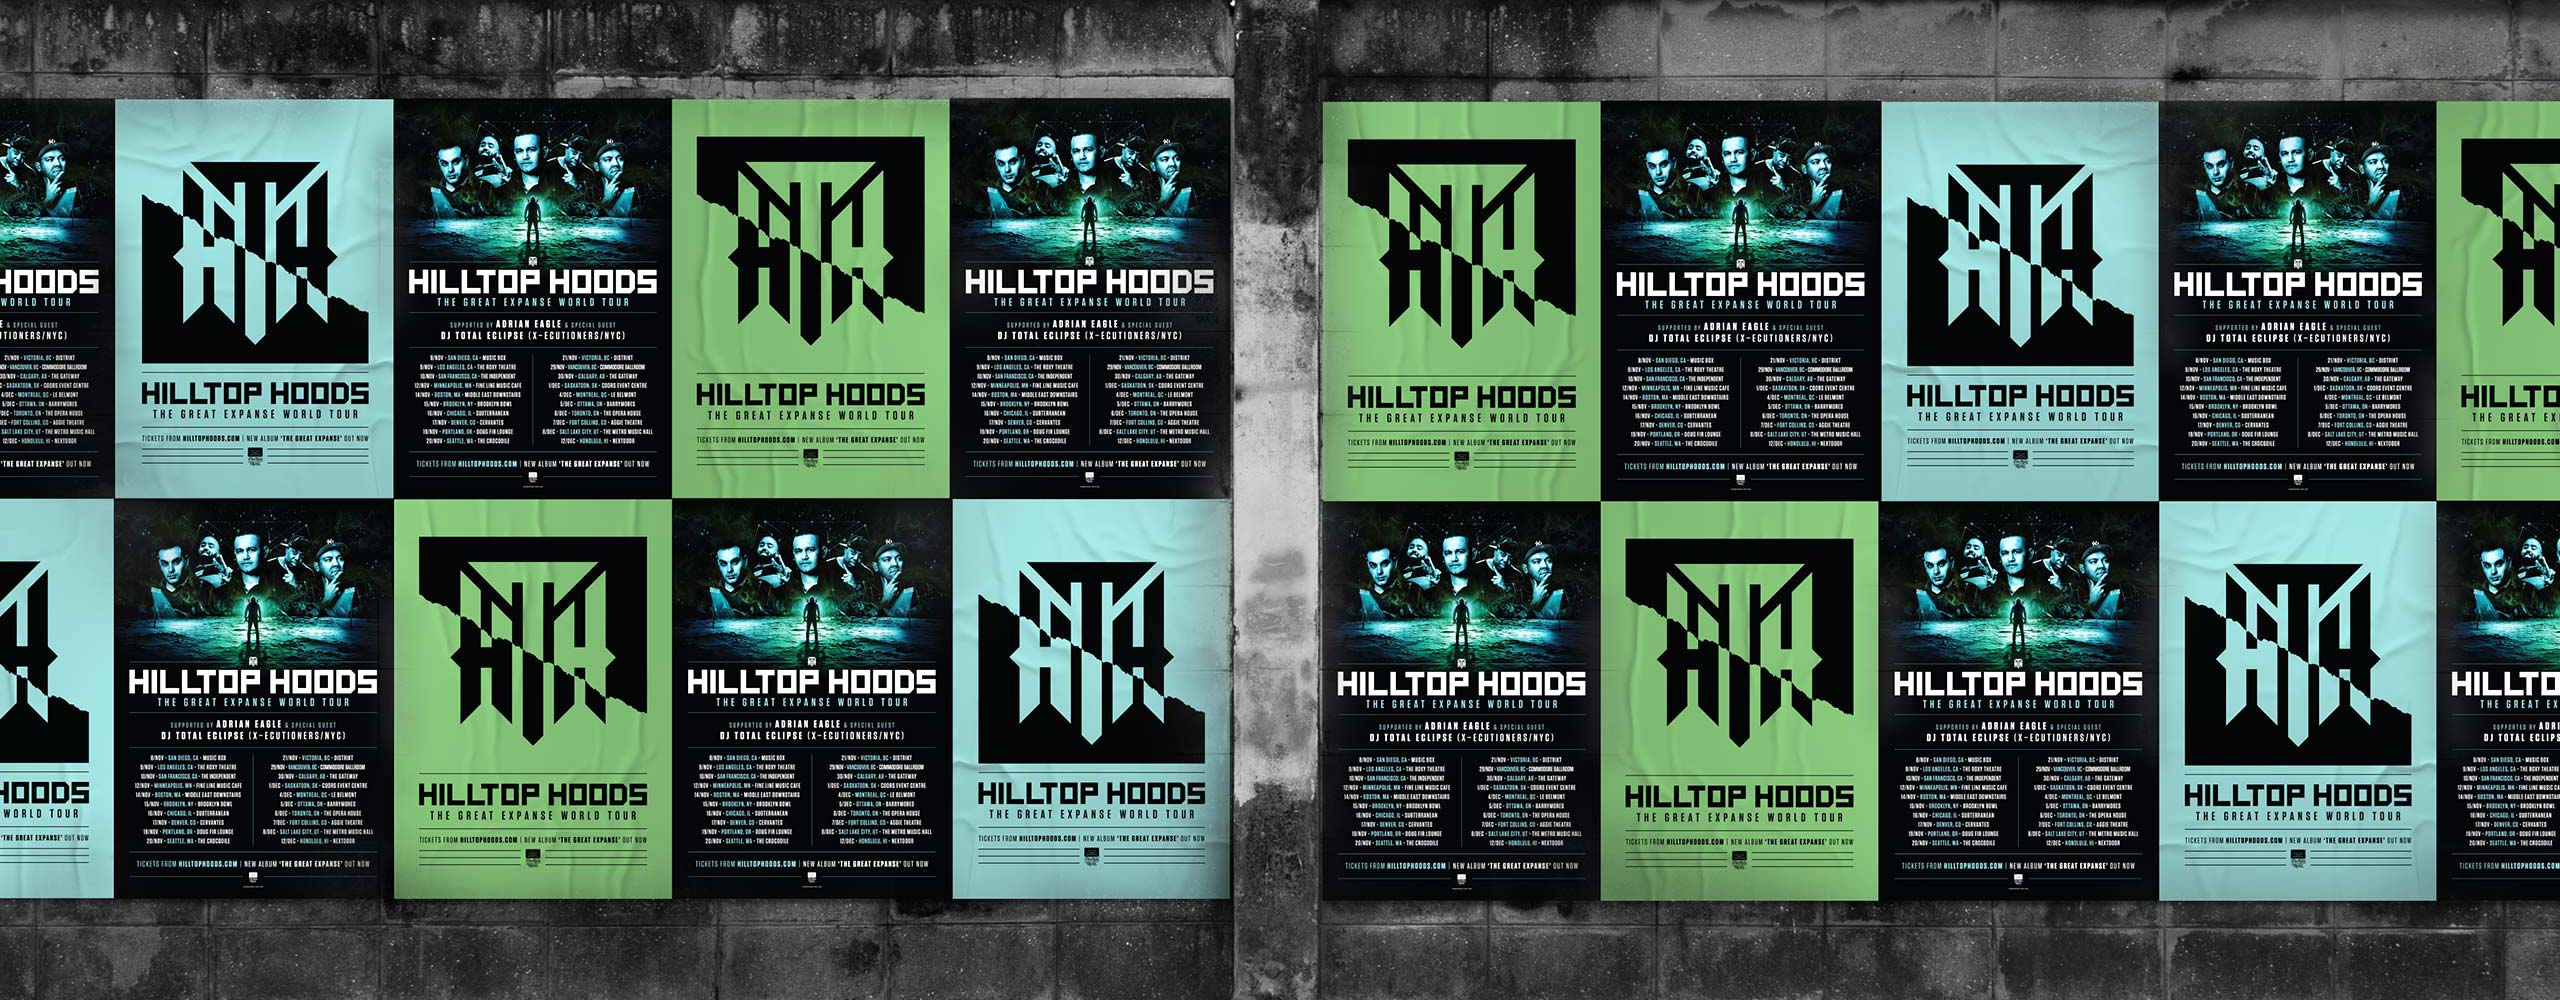 HILLTOP HOODS WORLD TOUR